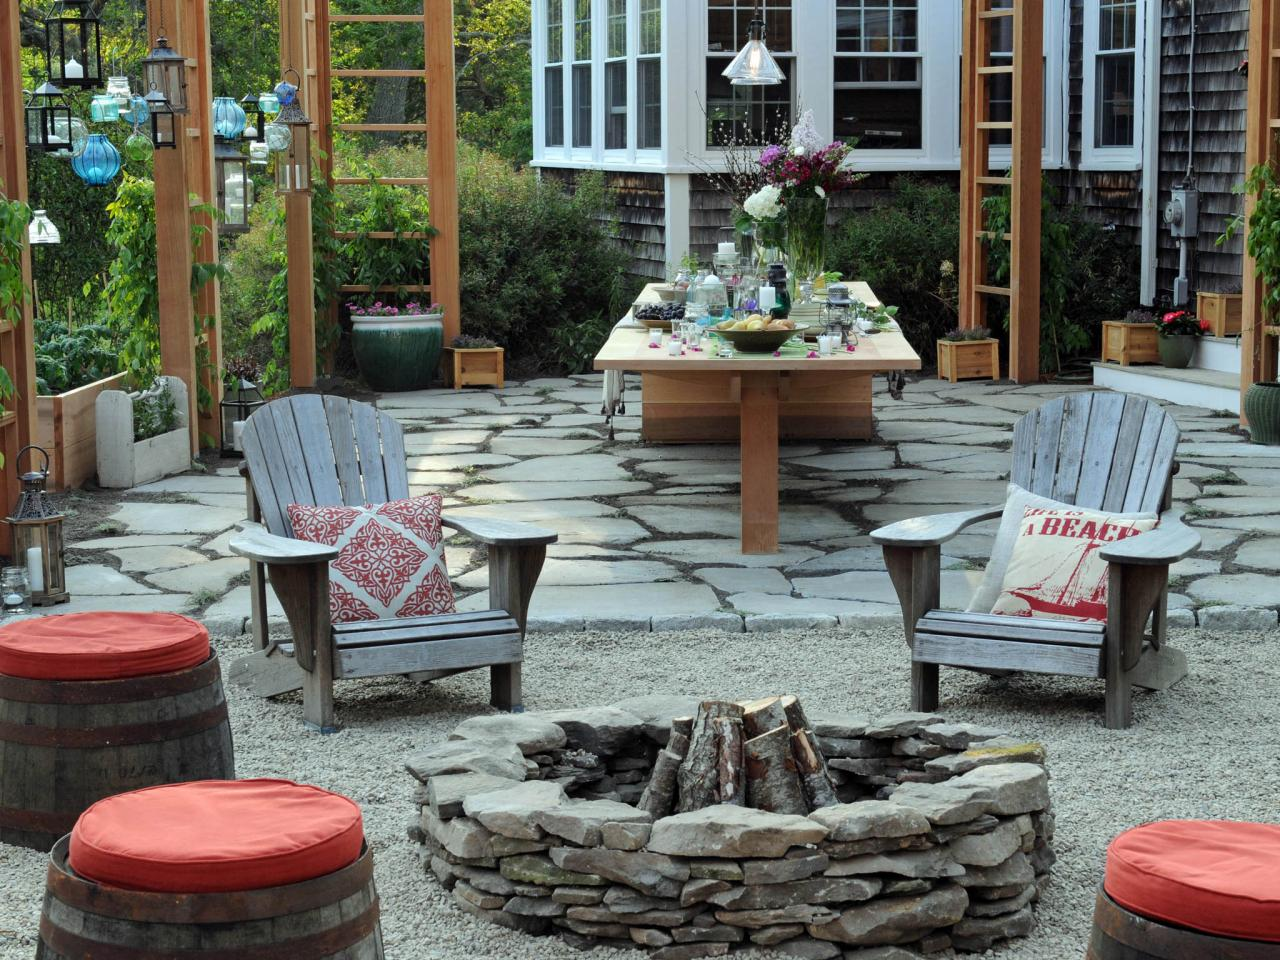 Fire Pit Design Ideas For Backyard Transformation - Wilson ... on Fire Pit Design  id=26103